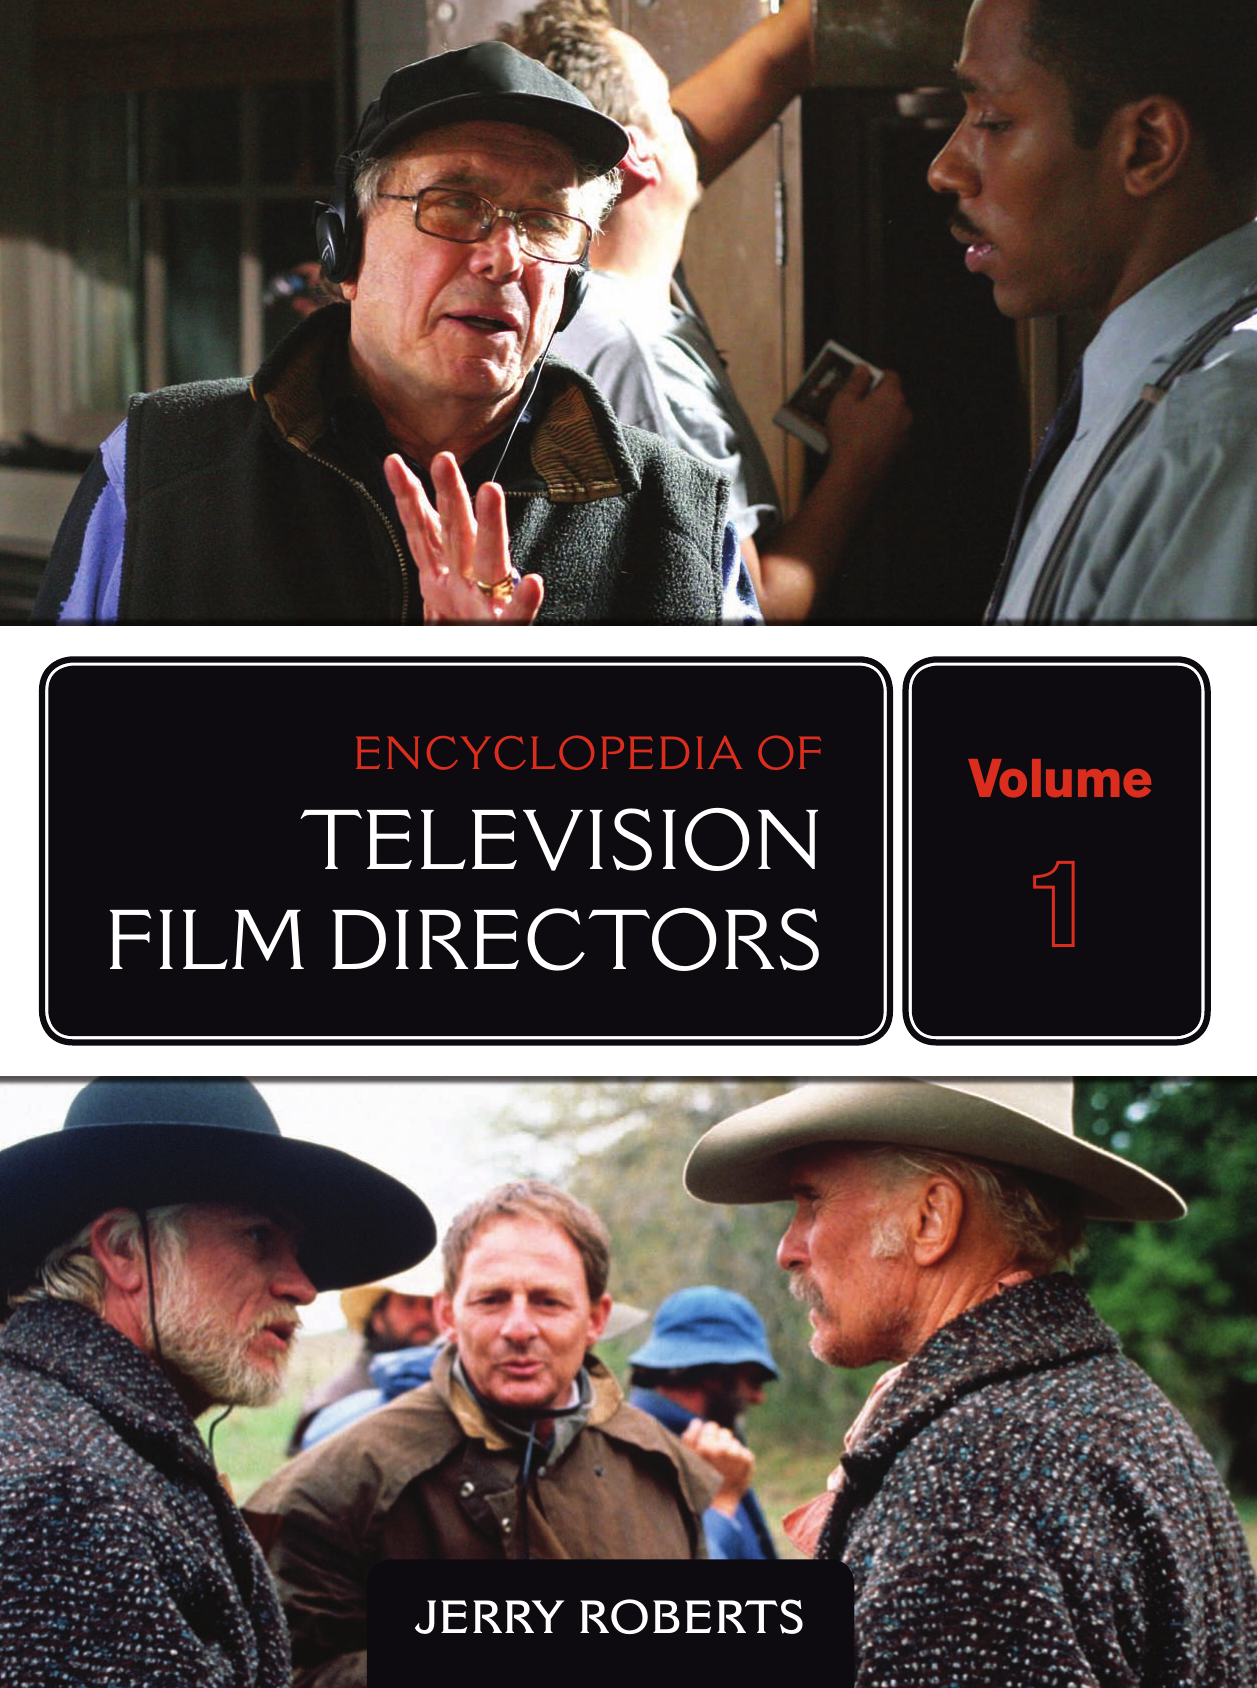 4cc461d7e58 Jerry Roberts - Encyclopedia of Television Film Directors (2009 The  Scarecrow Press Inc.)